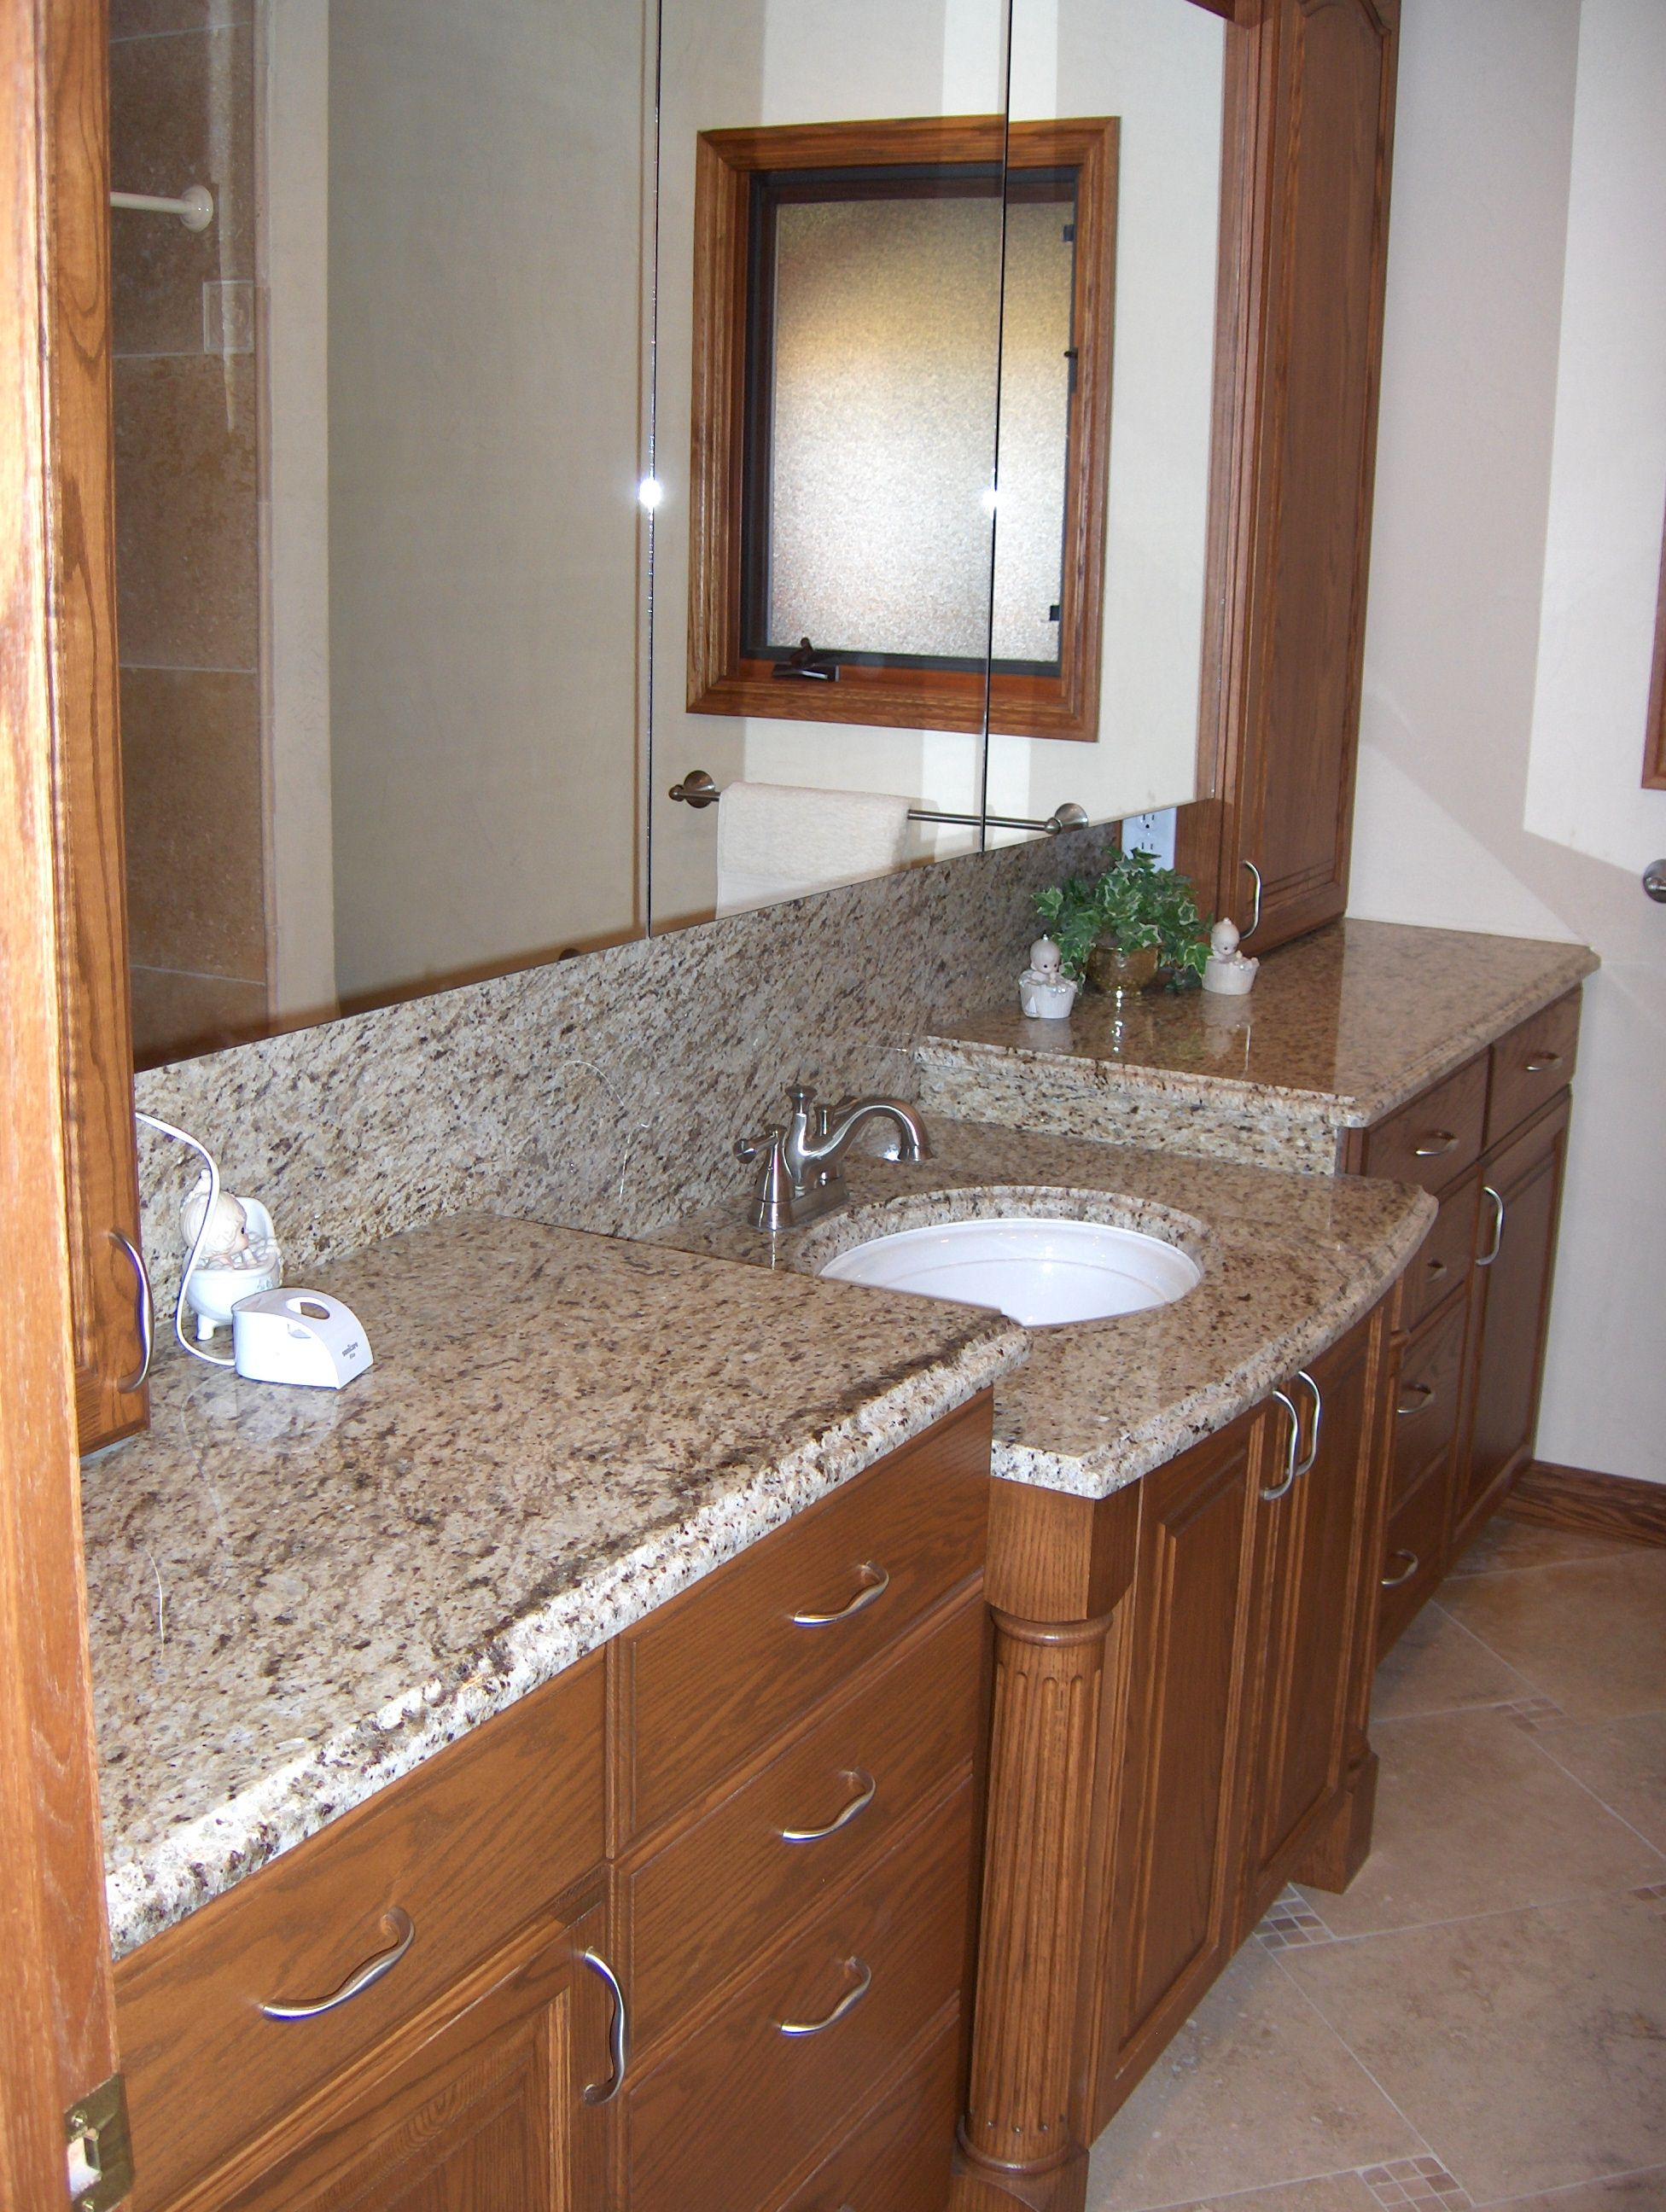 Bathroom Remodel: Multi Level Counter Tops; Stone Counter Tops